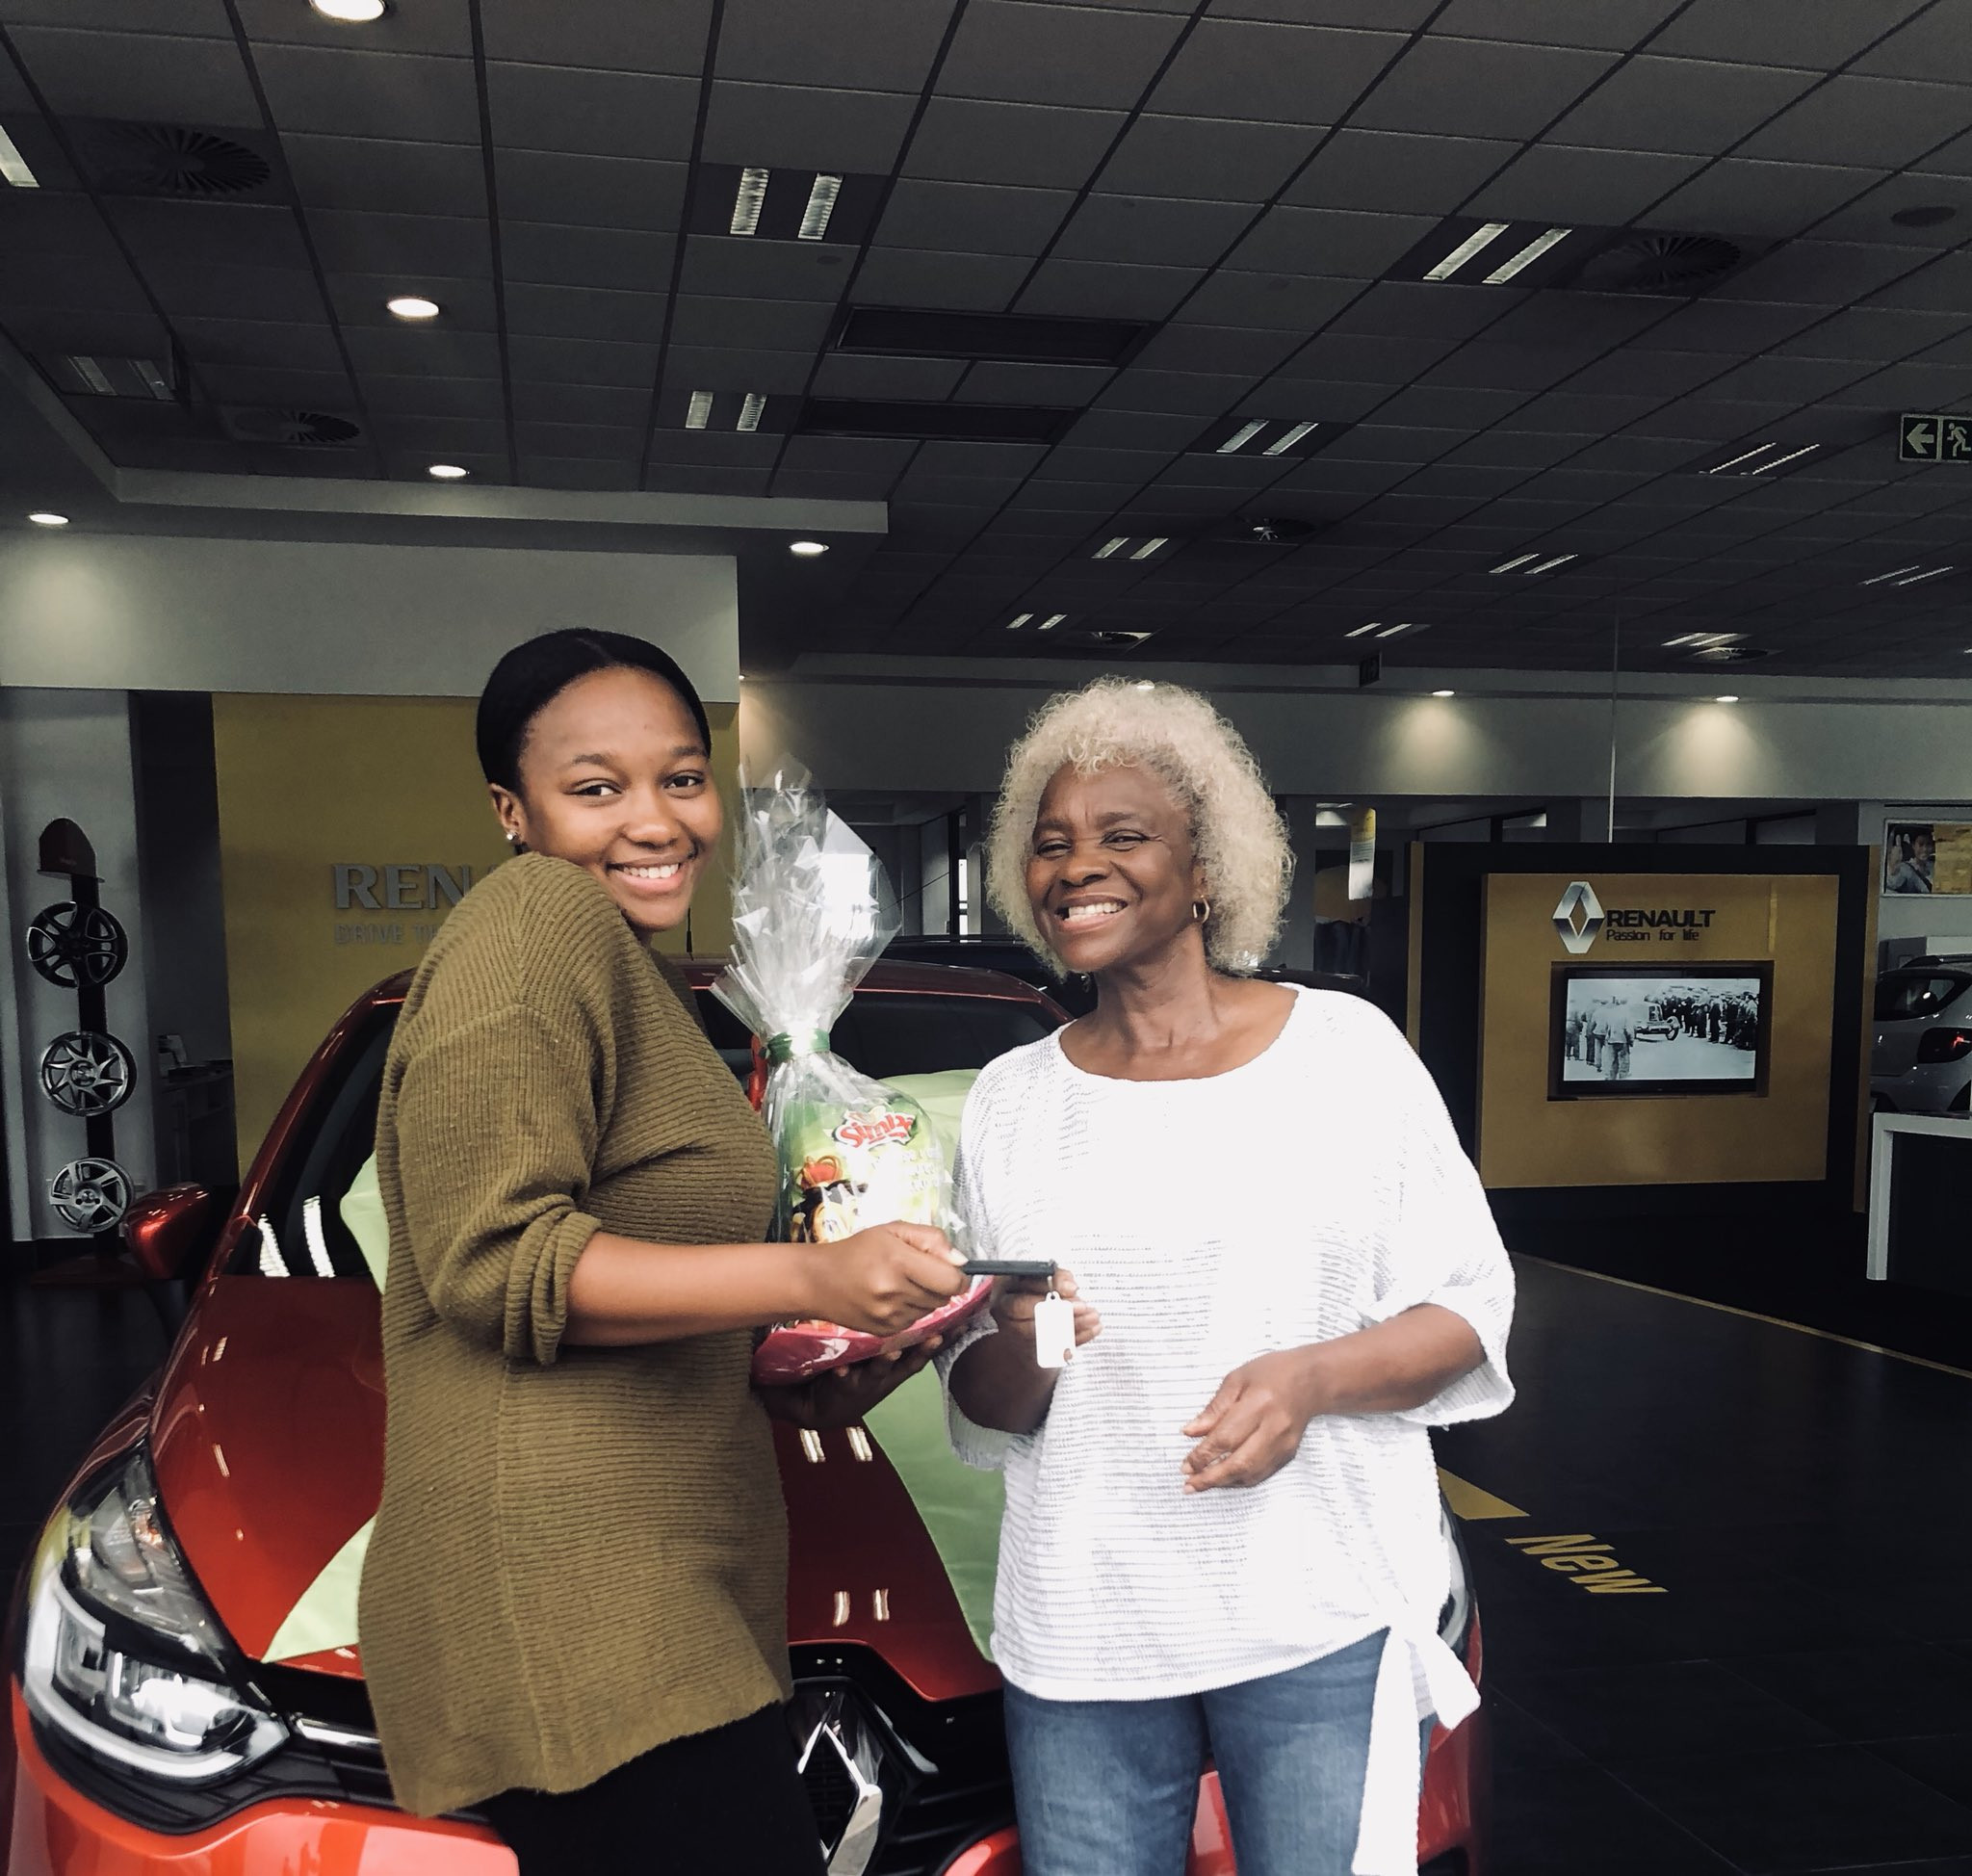 South African lady in high heavens after her mum surprised her with a car for being a good daughter